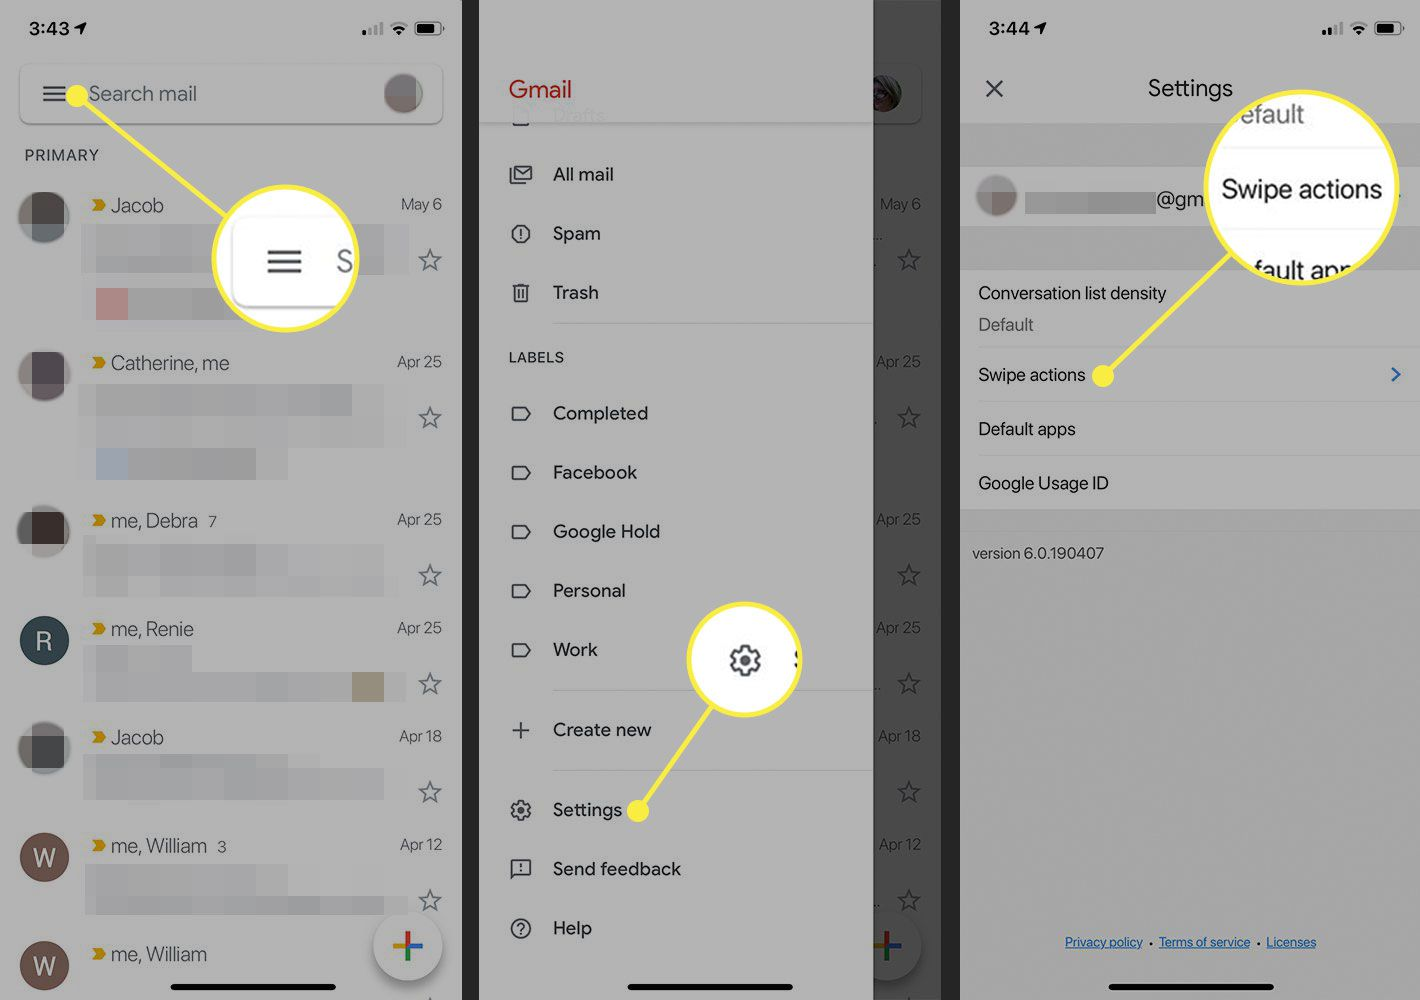 The Gmail app for iOS showing Settings and Swipe Actions